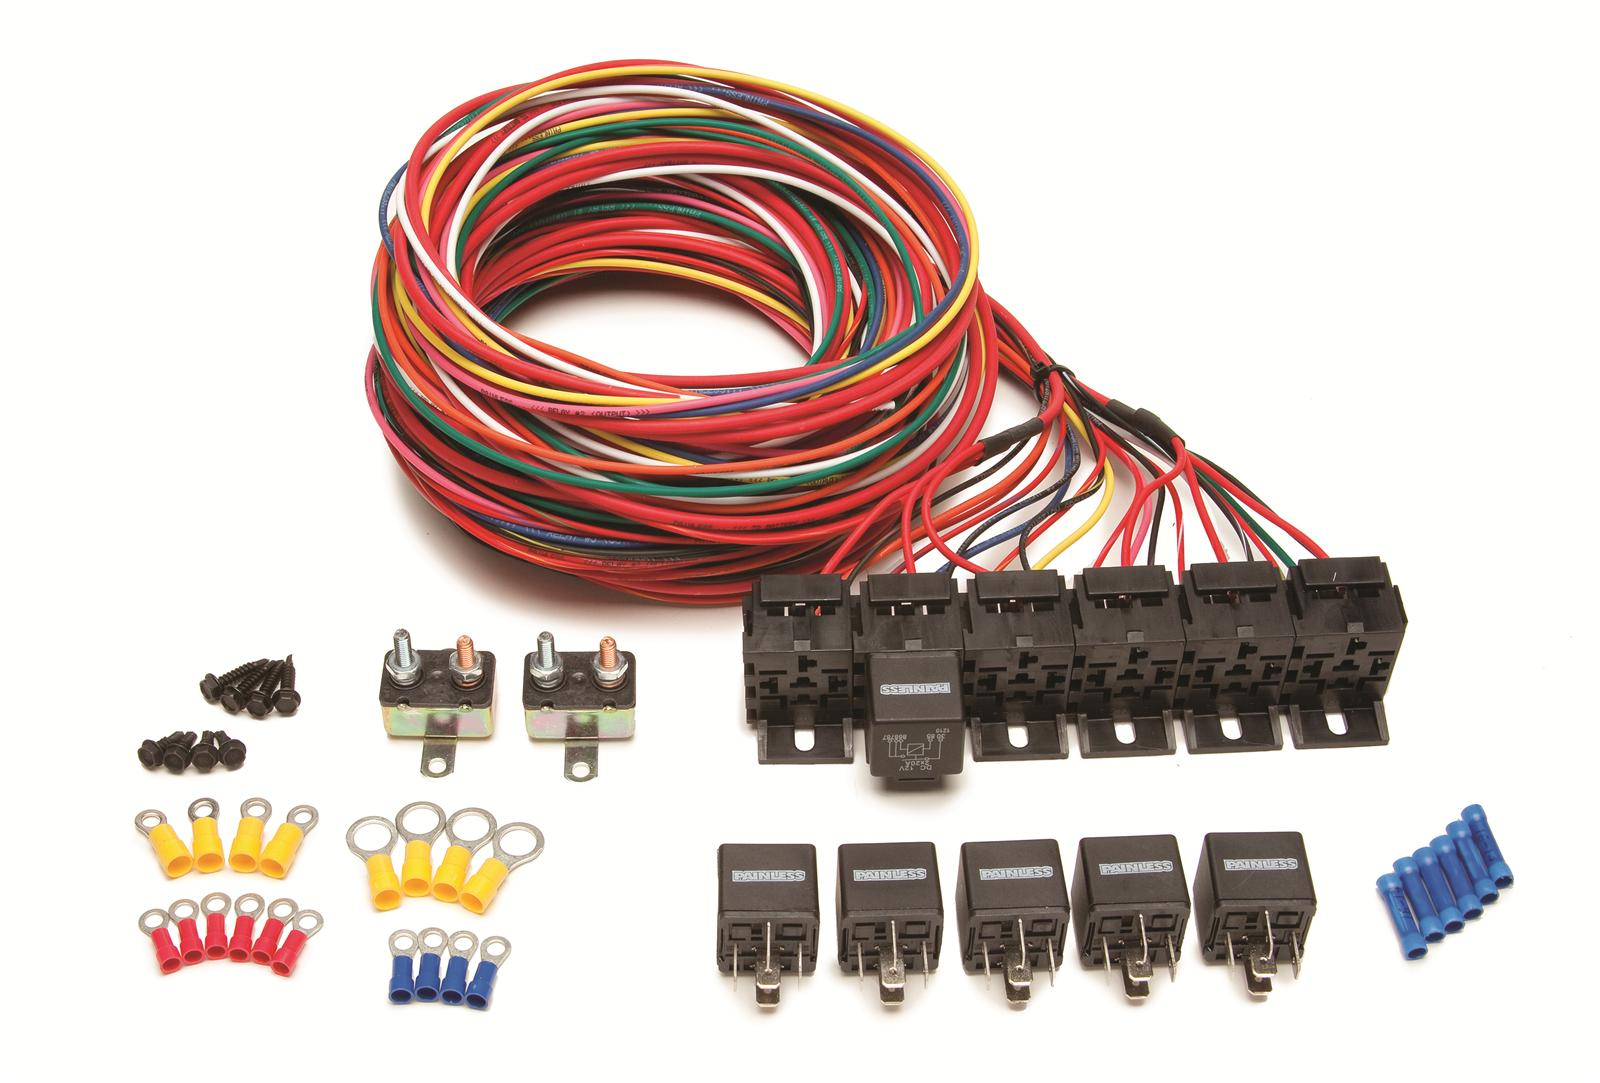 painless performance relays and relay kits 30108 free shipping on rh summitracing com Painless Wiring Harness Chevy Painless Wiring Harness Chevy